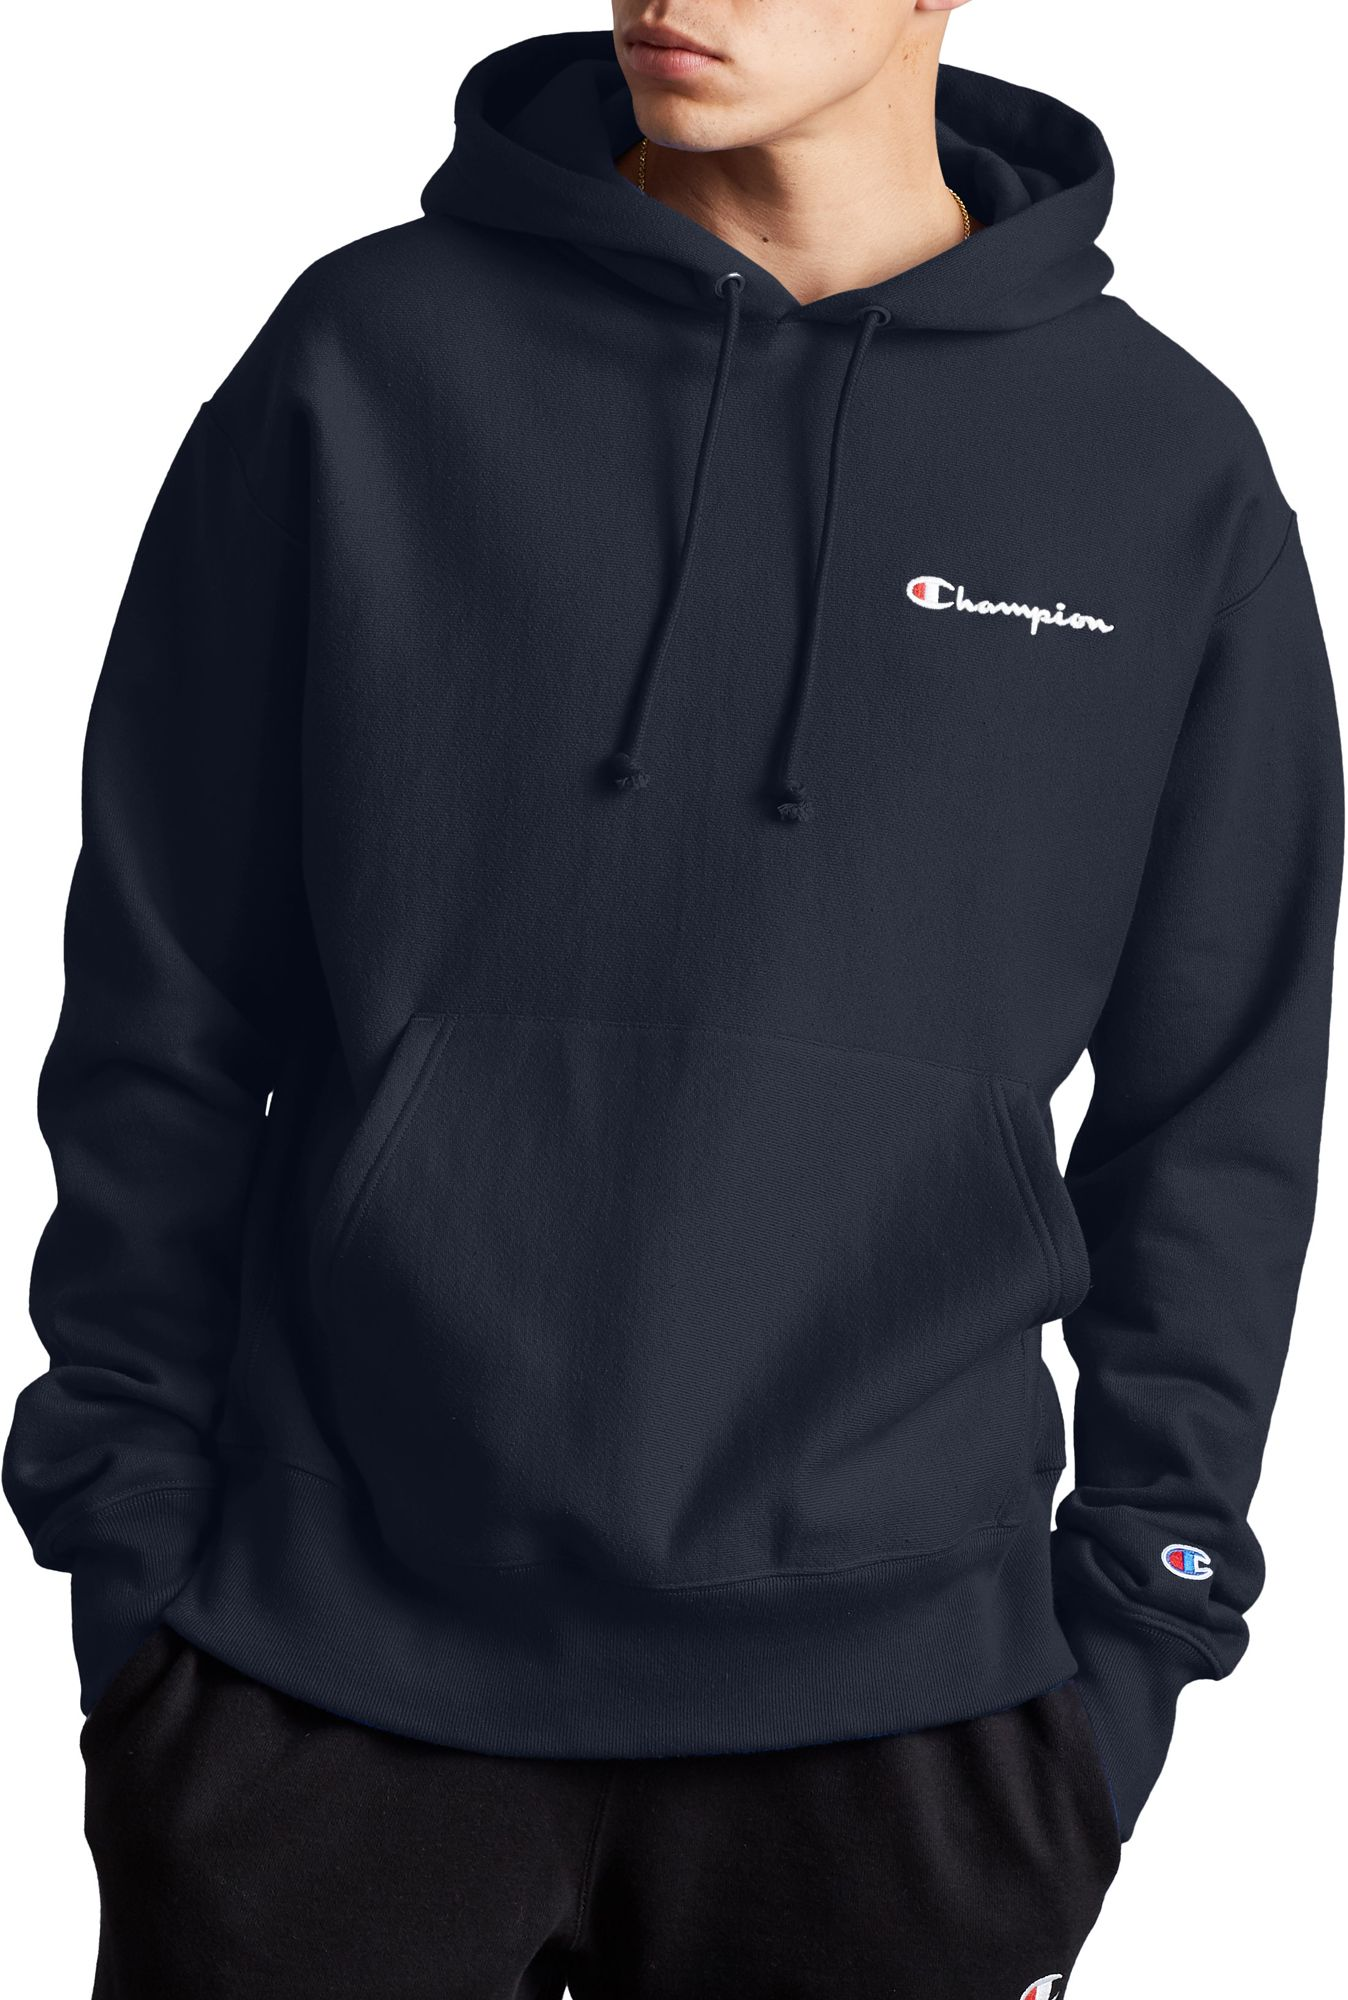 Champion LIFE Mens Reverse Weave Sweatshirt